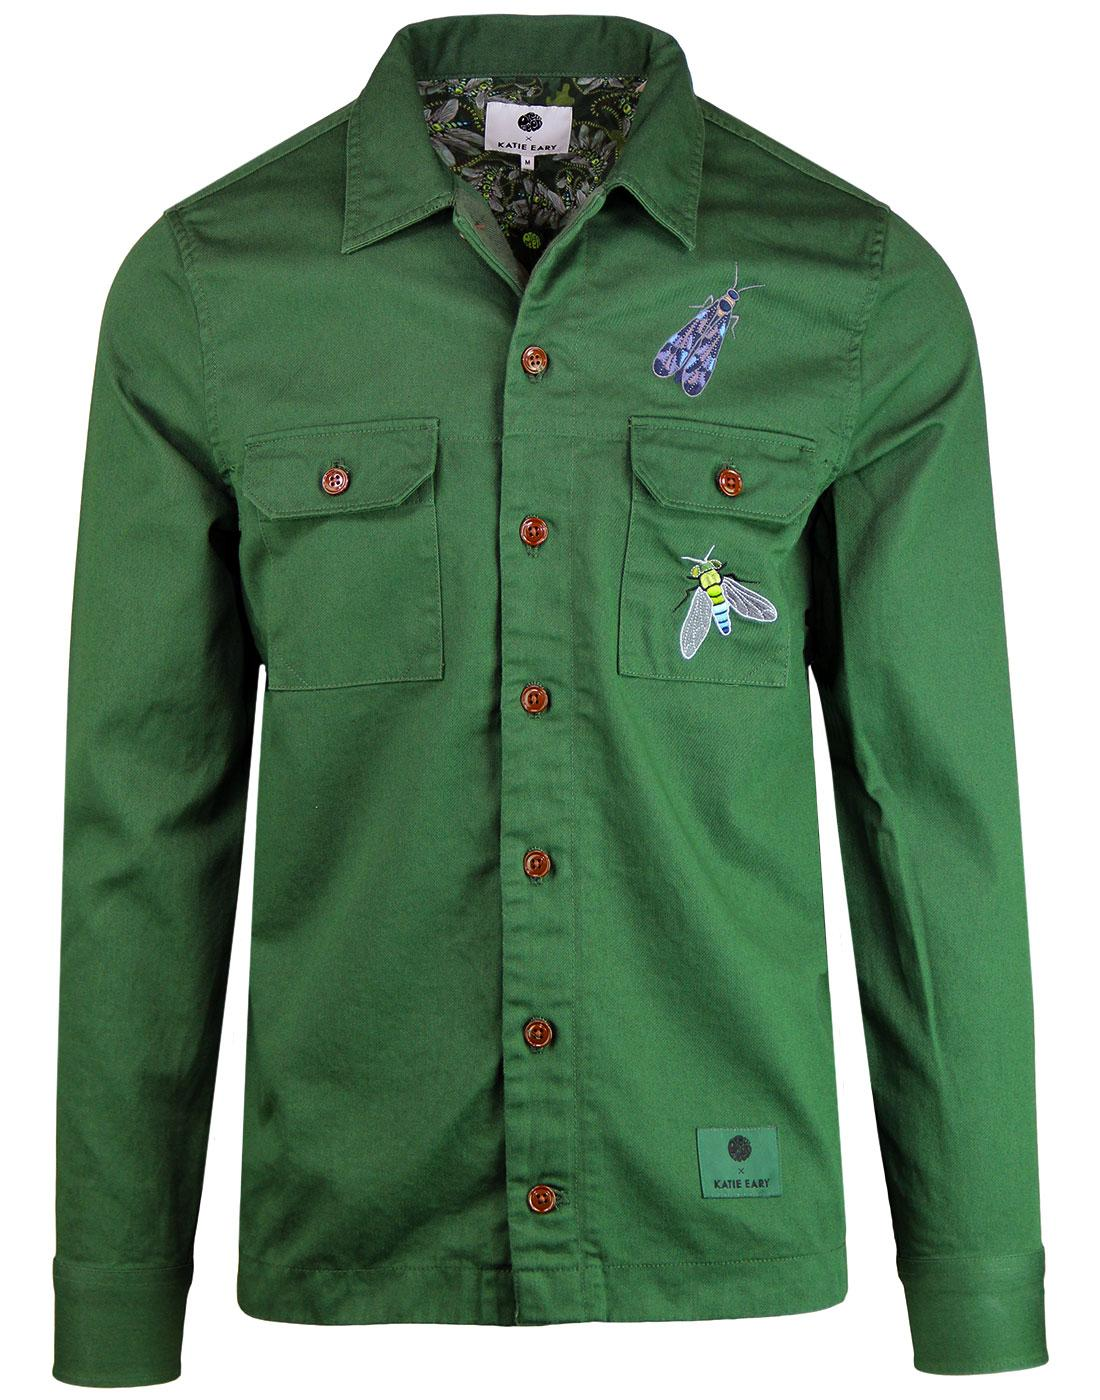 Toria PRETTY GREEN X KATIE EARY 60s Military Shirt